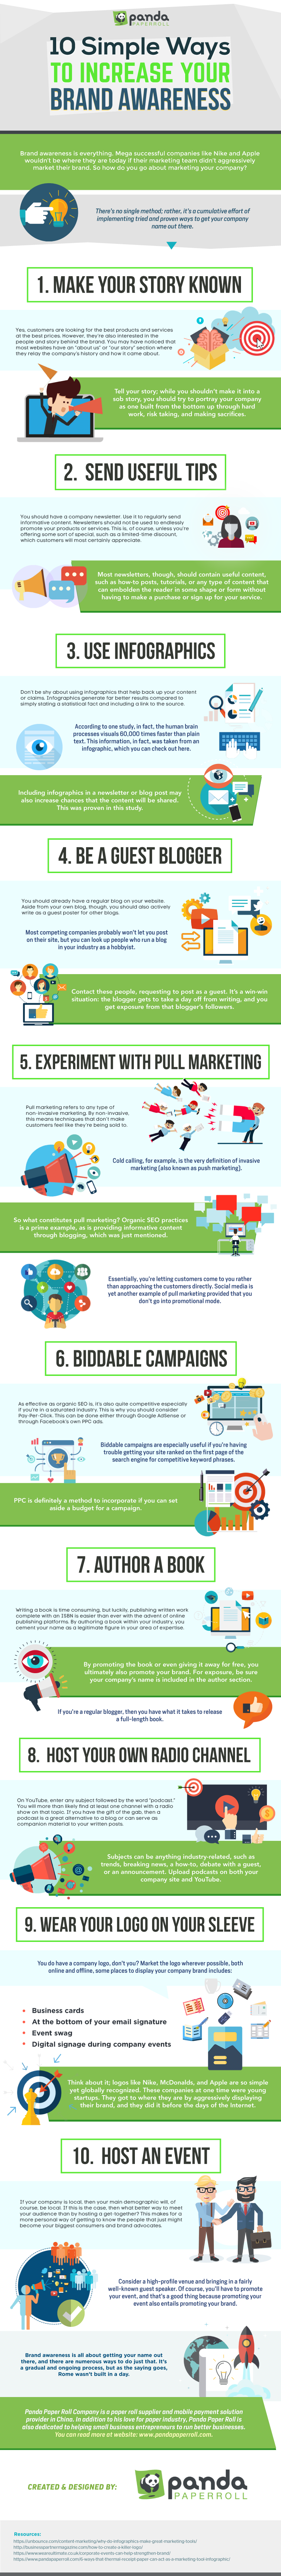 10 Simple Ways to Increase Your Brand Awareness (Infographic)